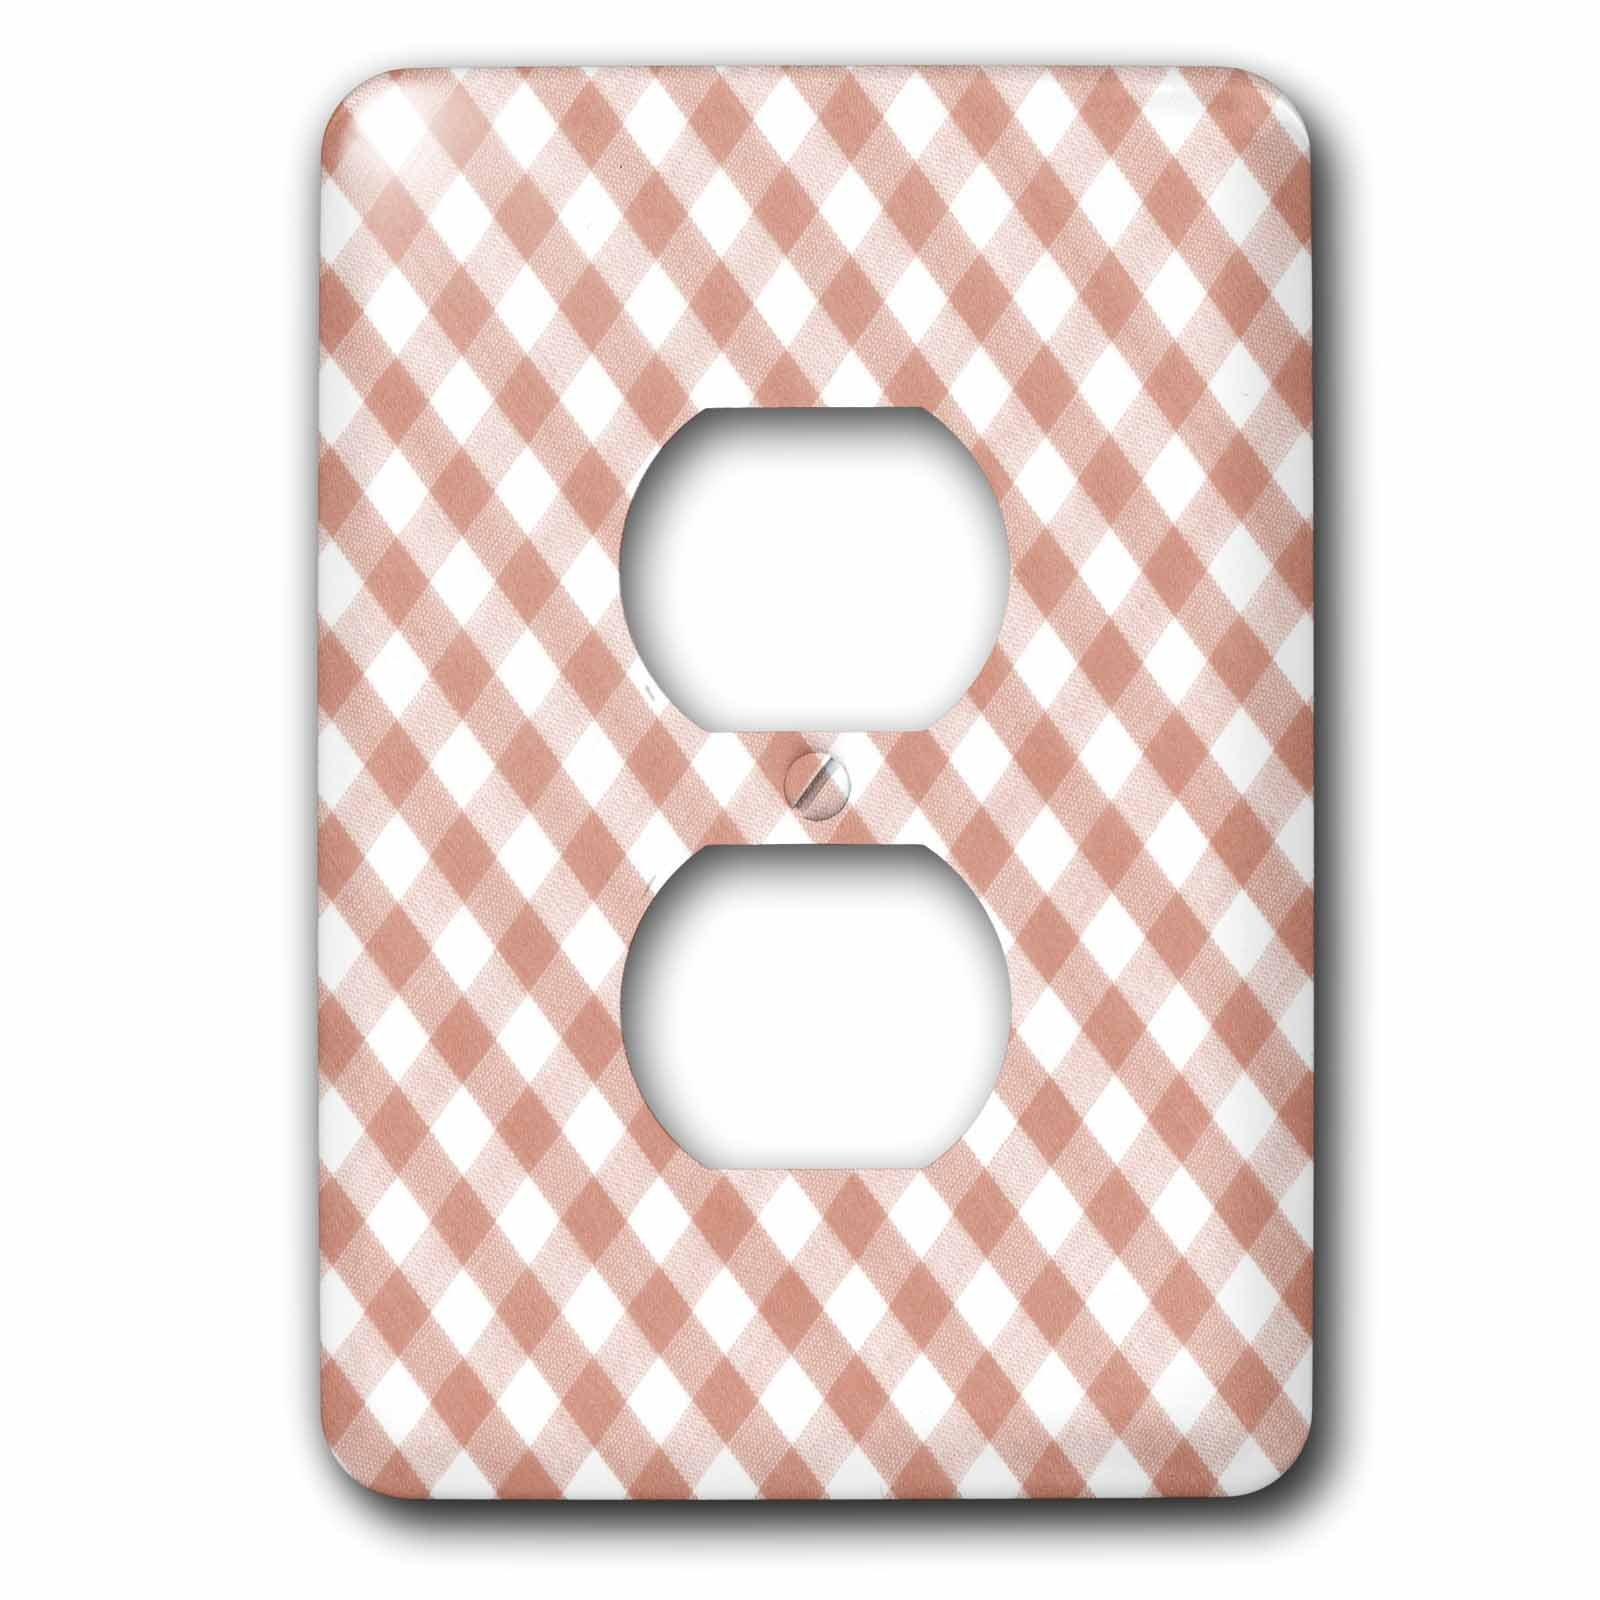 3dRose Lsp_113026_6 Brown and White Gingham Pattern Traditional Checkered Rustic Checks Retro Country Kitchen Dining 2 Plug Outlet Cover